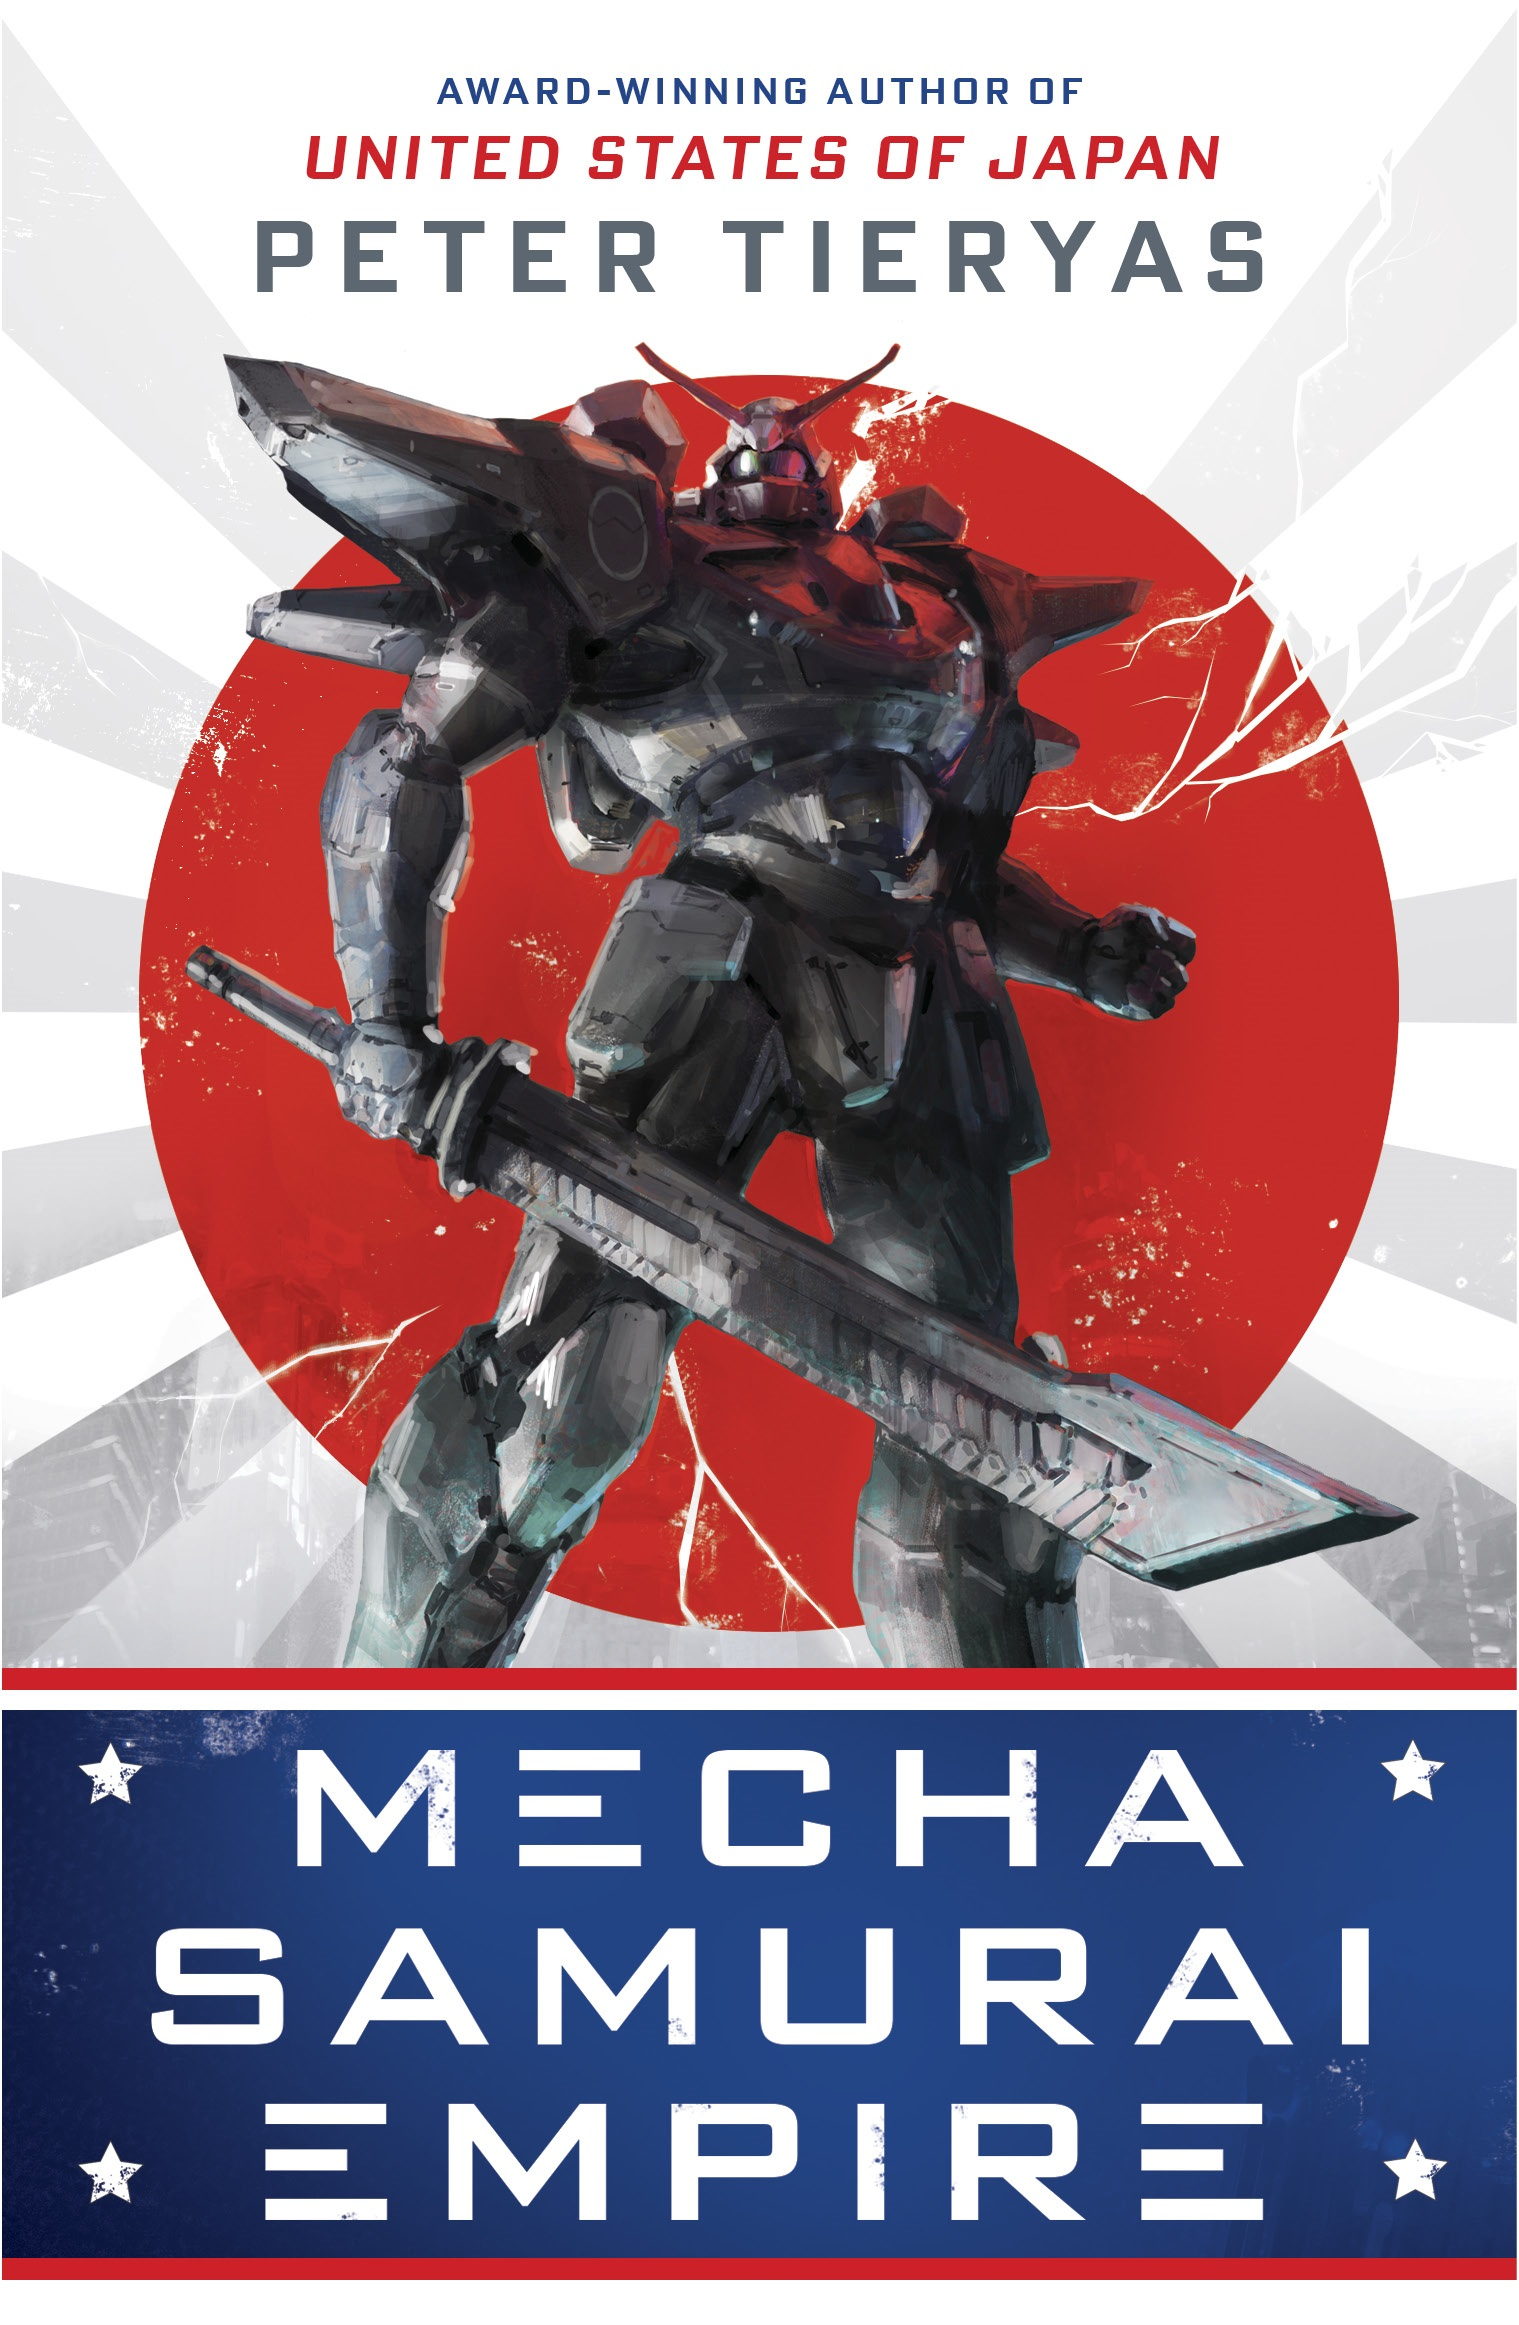 Mecha Samurai Empire cover image